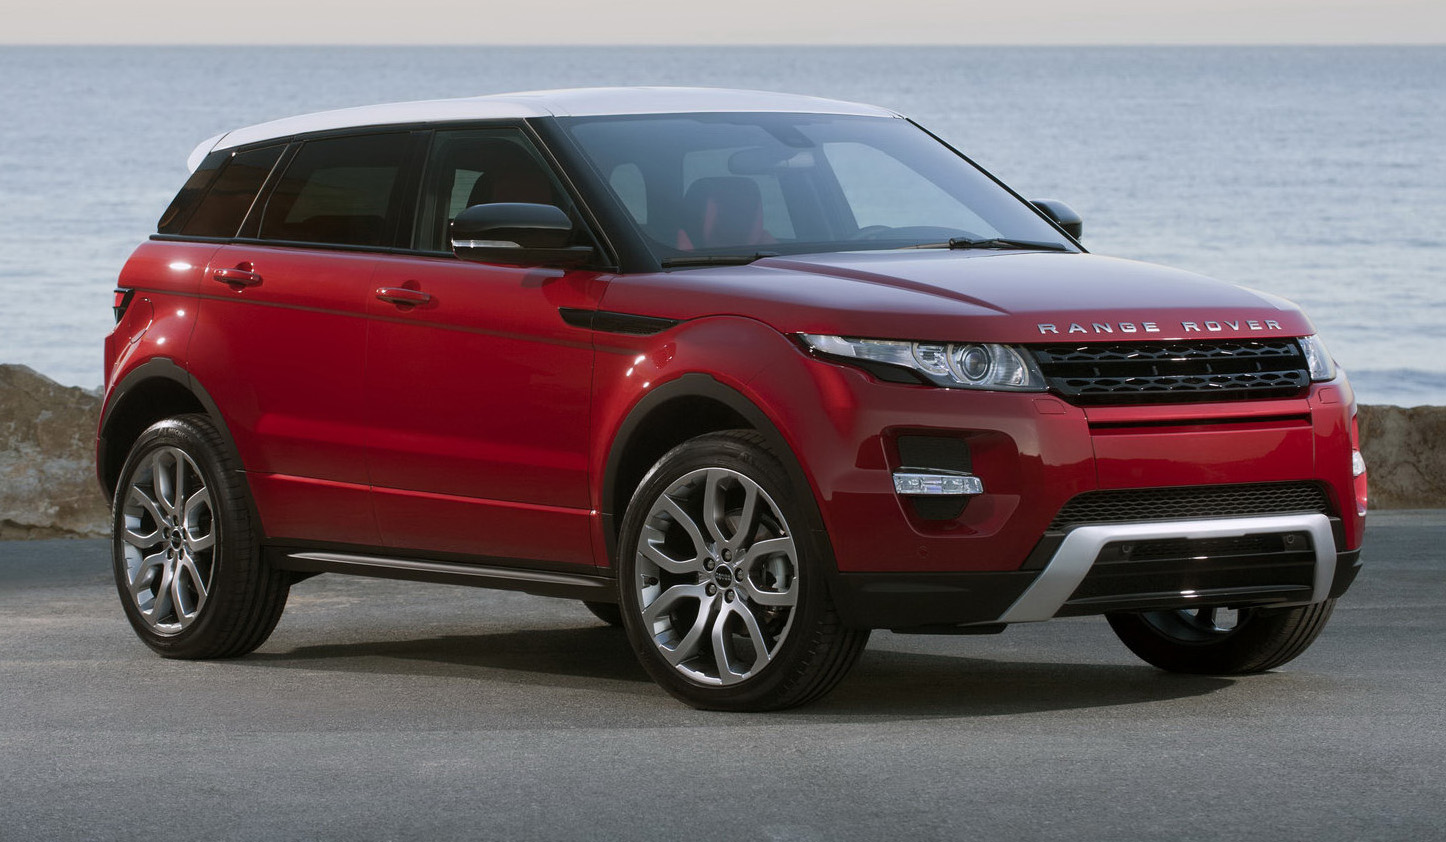 Range Rover to use new Jaguar SUV